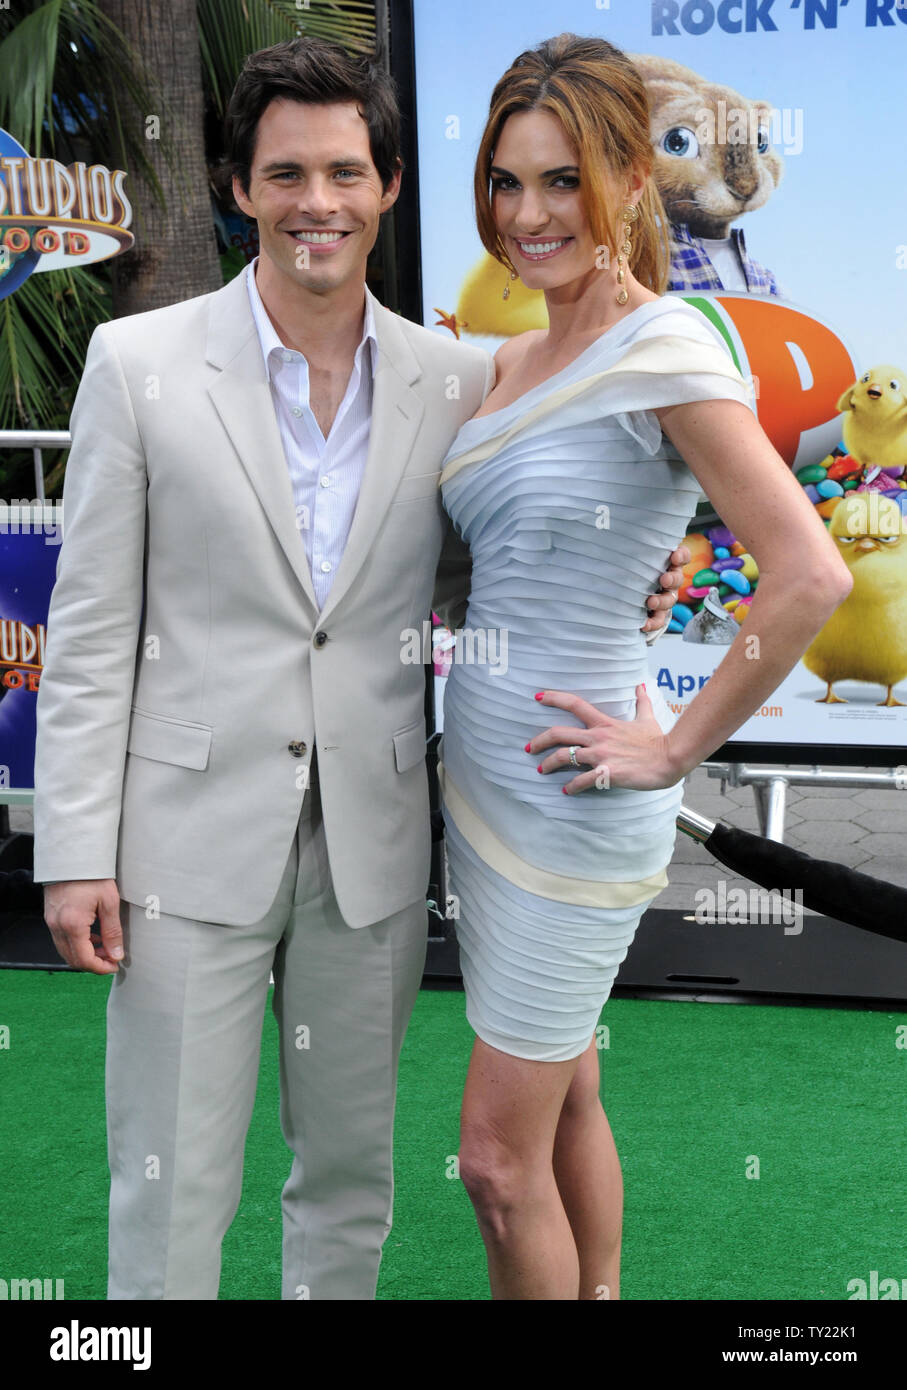 """Actor James Marsden, the voice of Fred in the animated motion picture comedy """"Hop"""", arrives with his wife Lisa Linde at the premiere of film at Universal Studios in Universal City, California on March 27, 2011.   UPI/Jim Ruymen Stock Photo"""